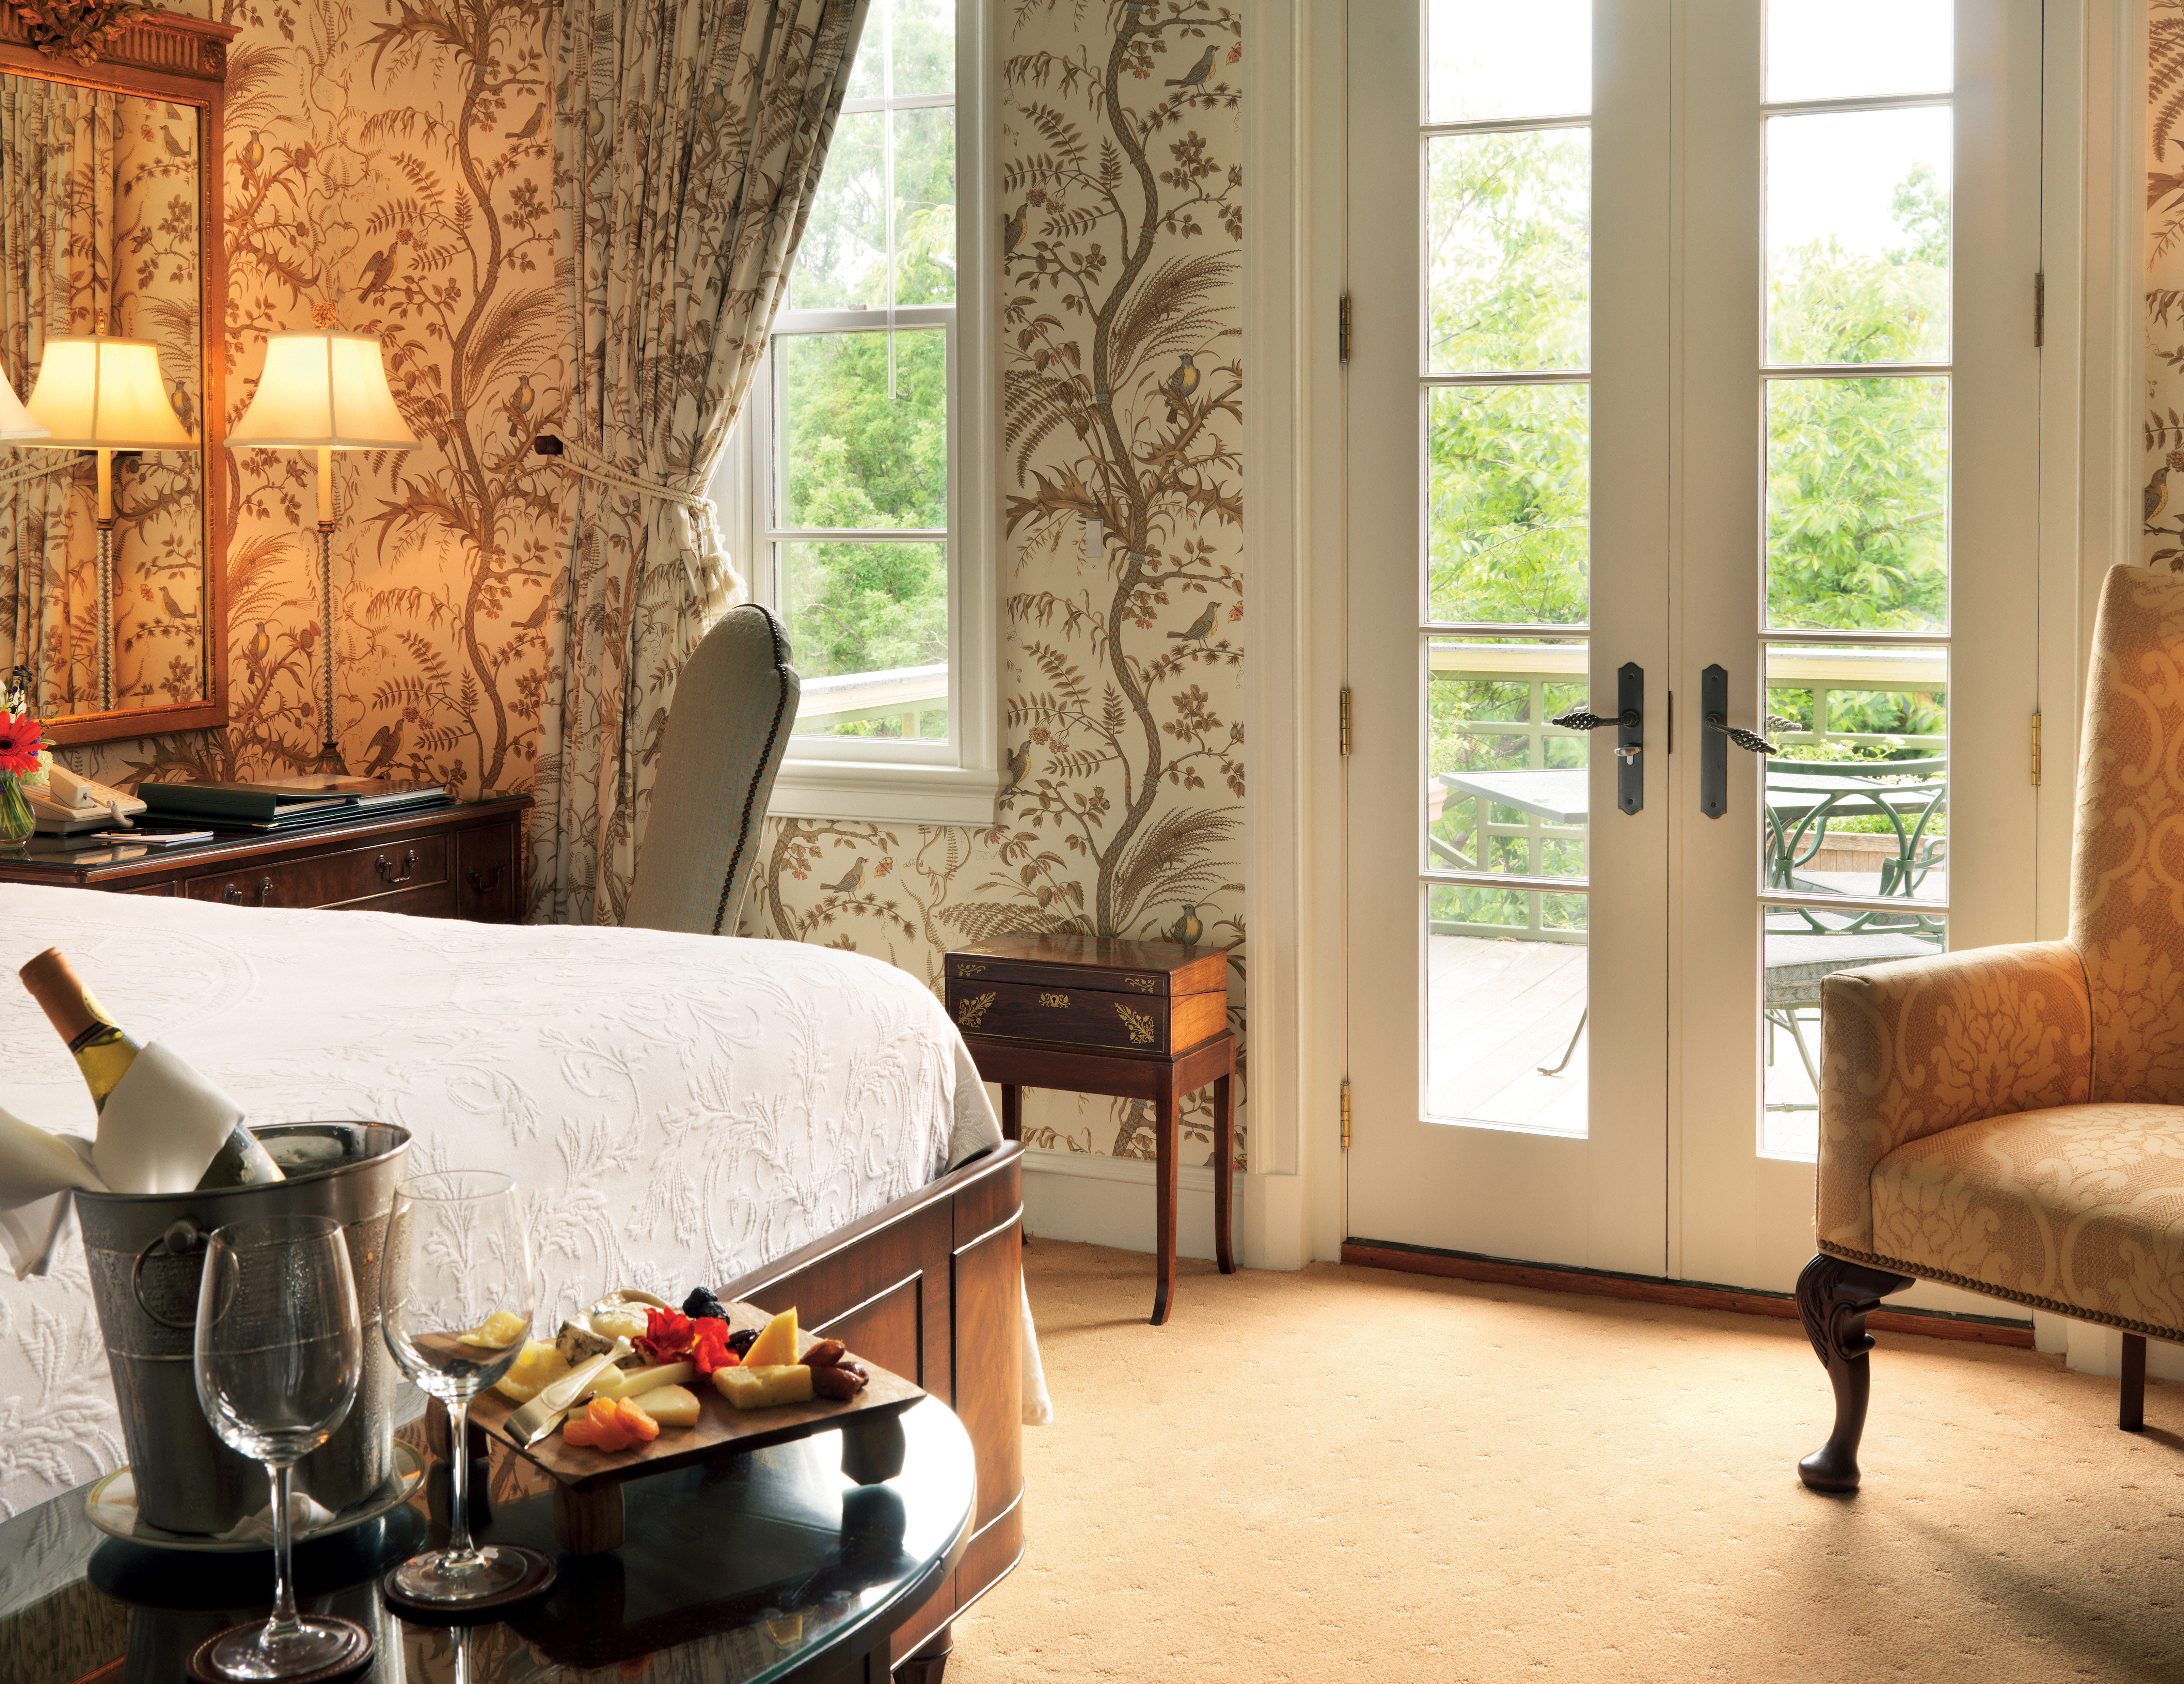 Balcony Bedroom Country Hotels Romantic Scenic views property living room home cottage curtain farmhouse Suite flooring textile window treatment